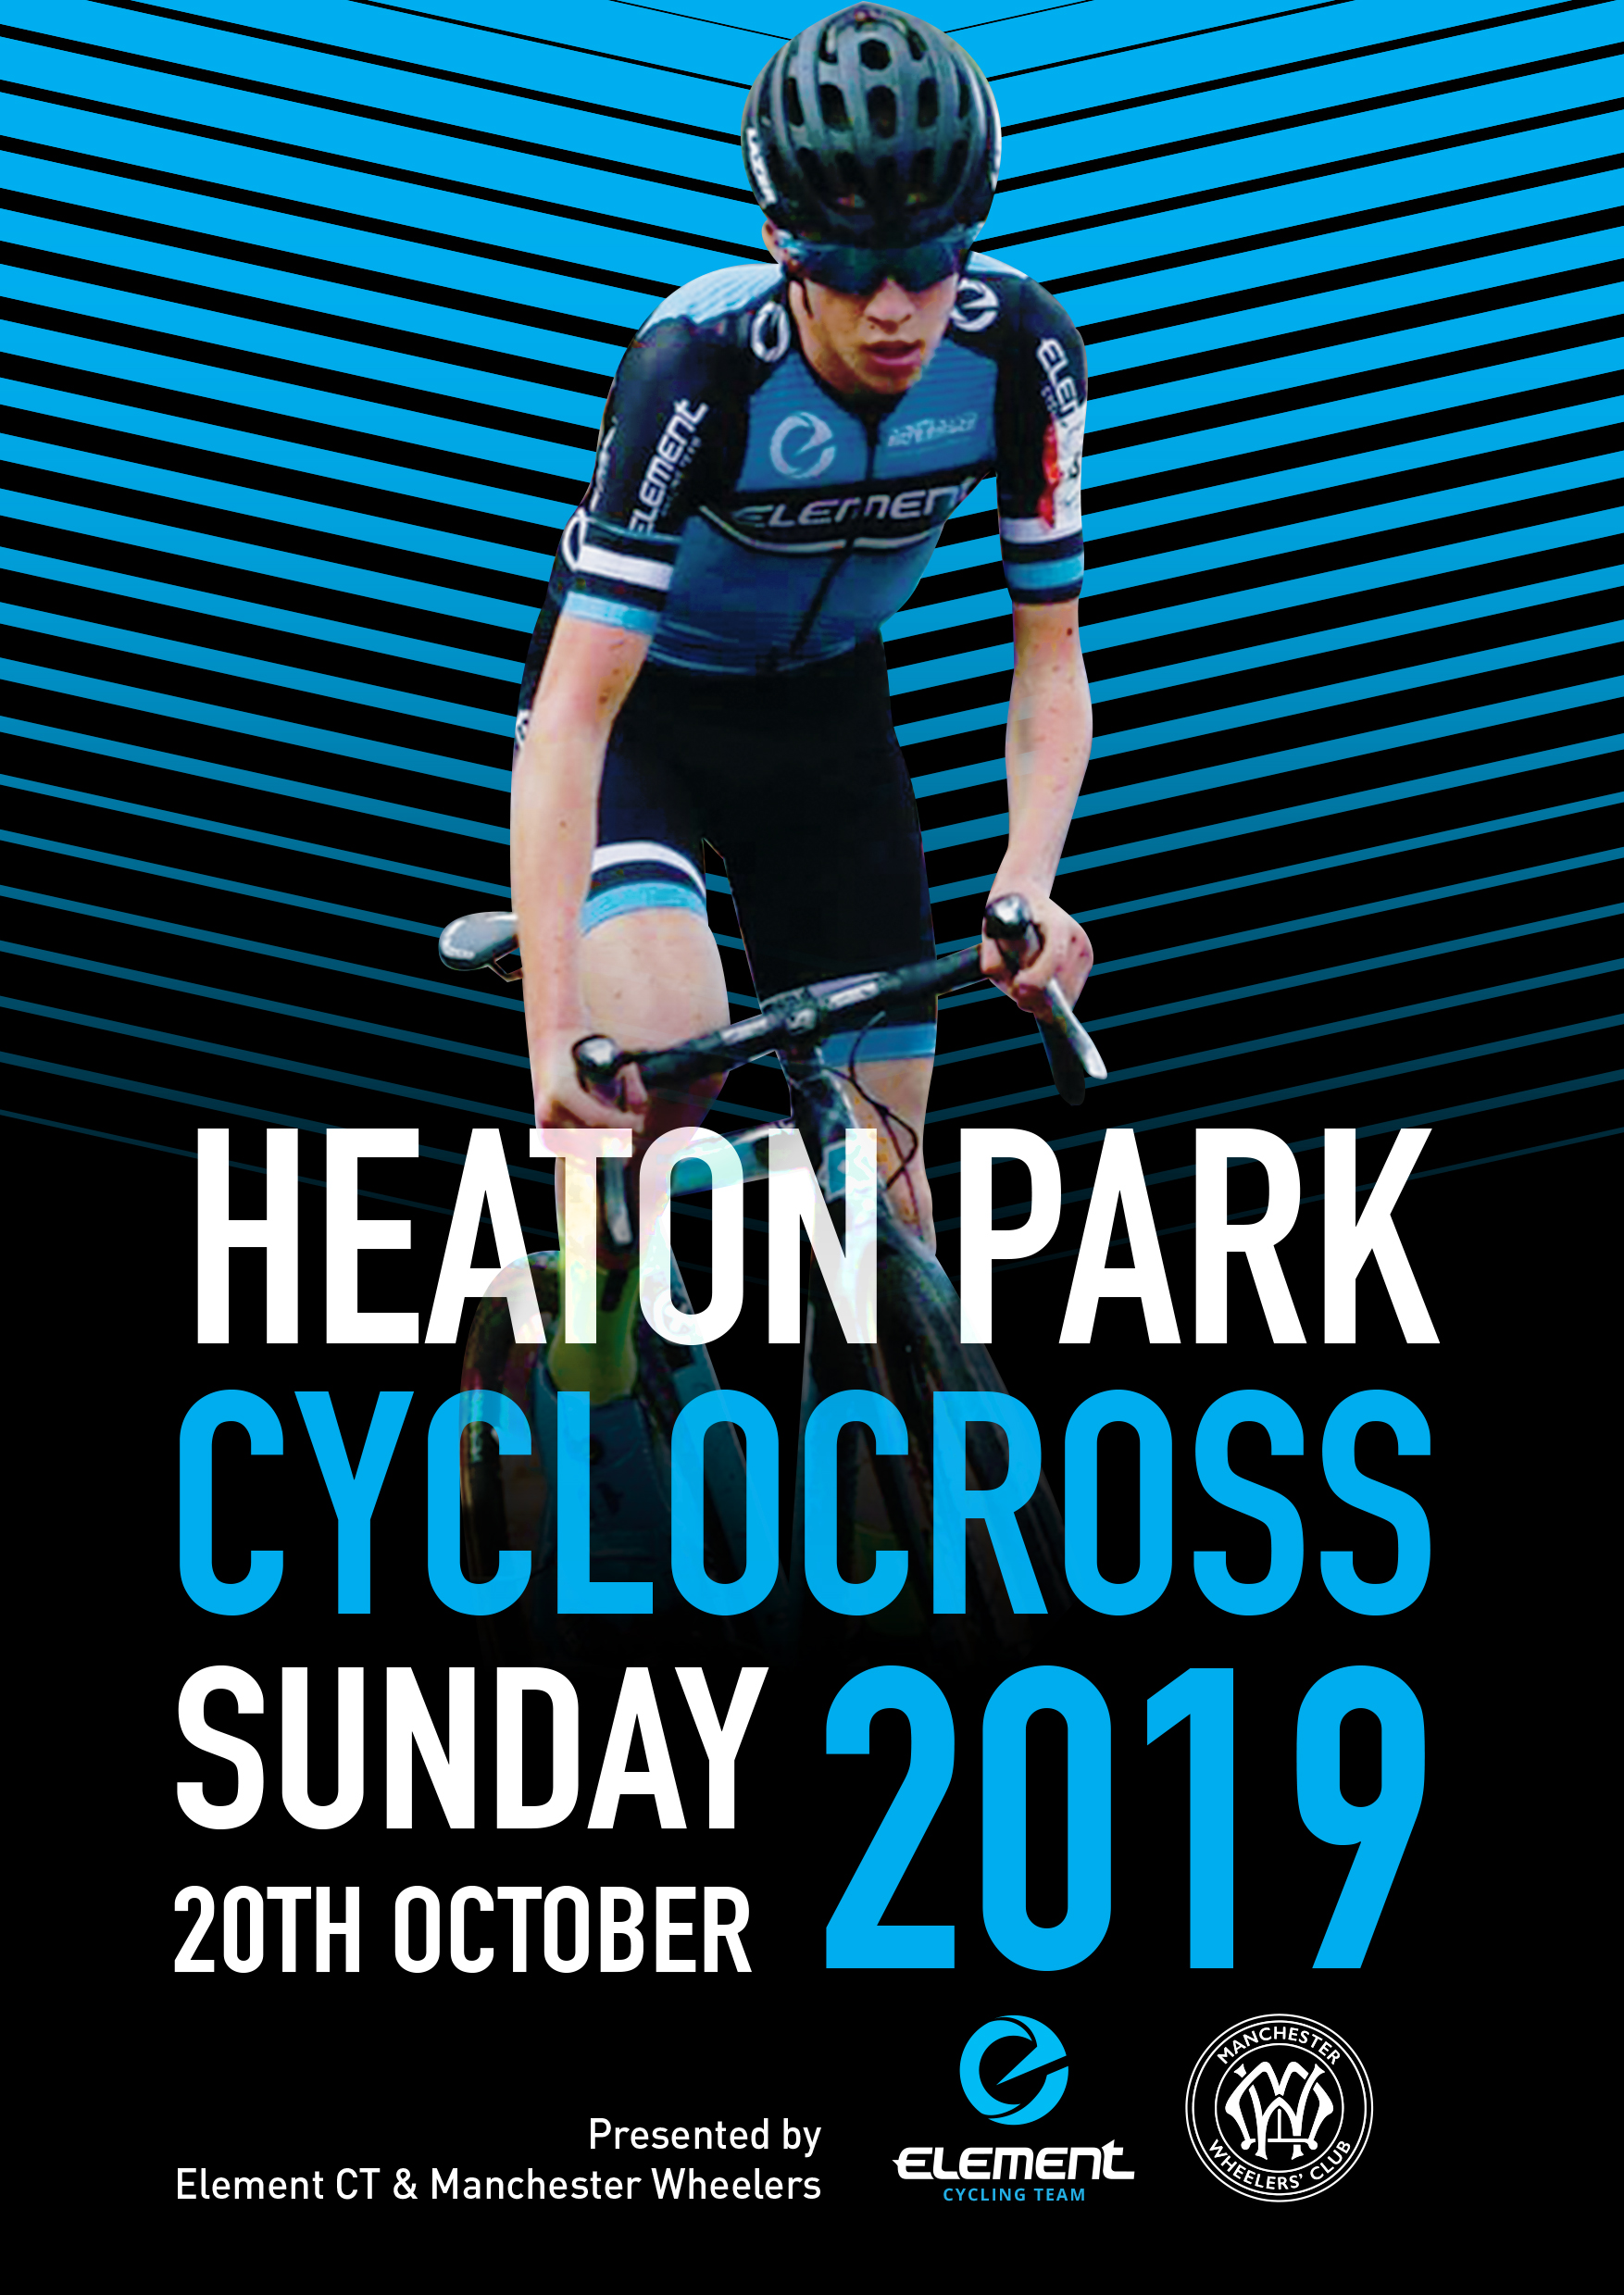 Preview: Heaton Park Cyclocross Presented by Element Cycling Team and Manchester Wheelers – 20 Oct 2019